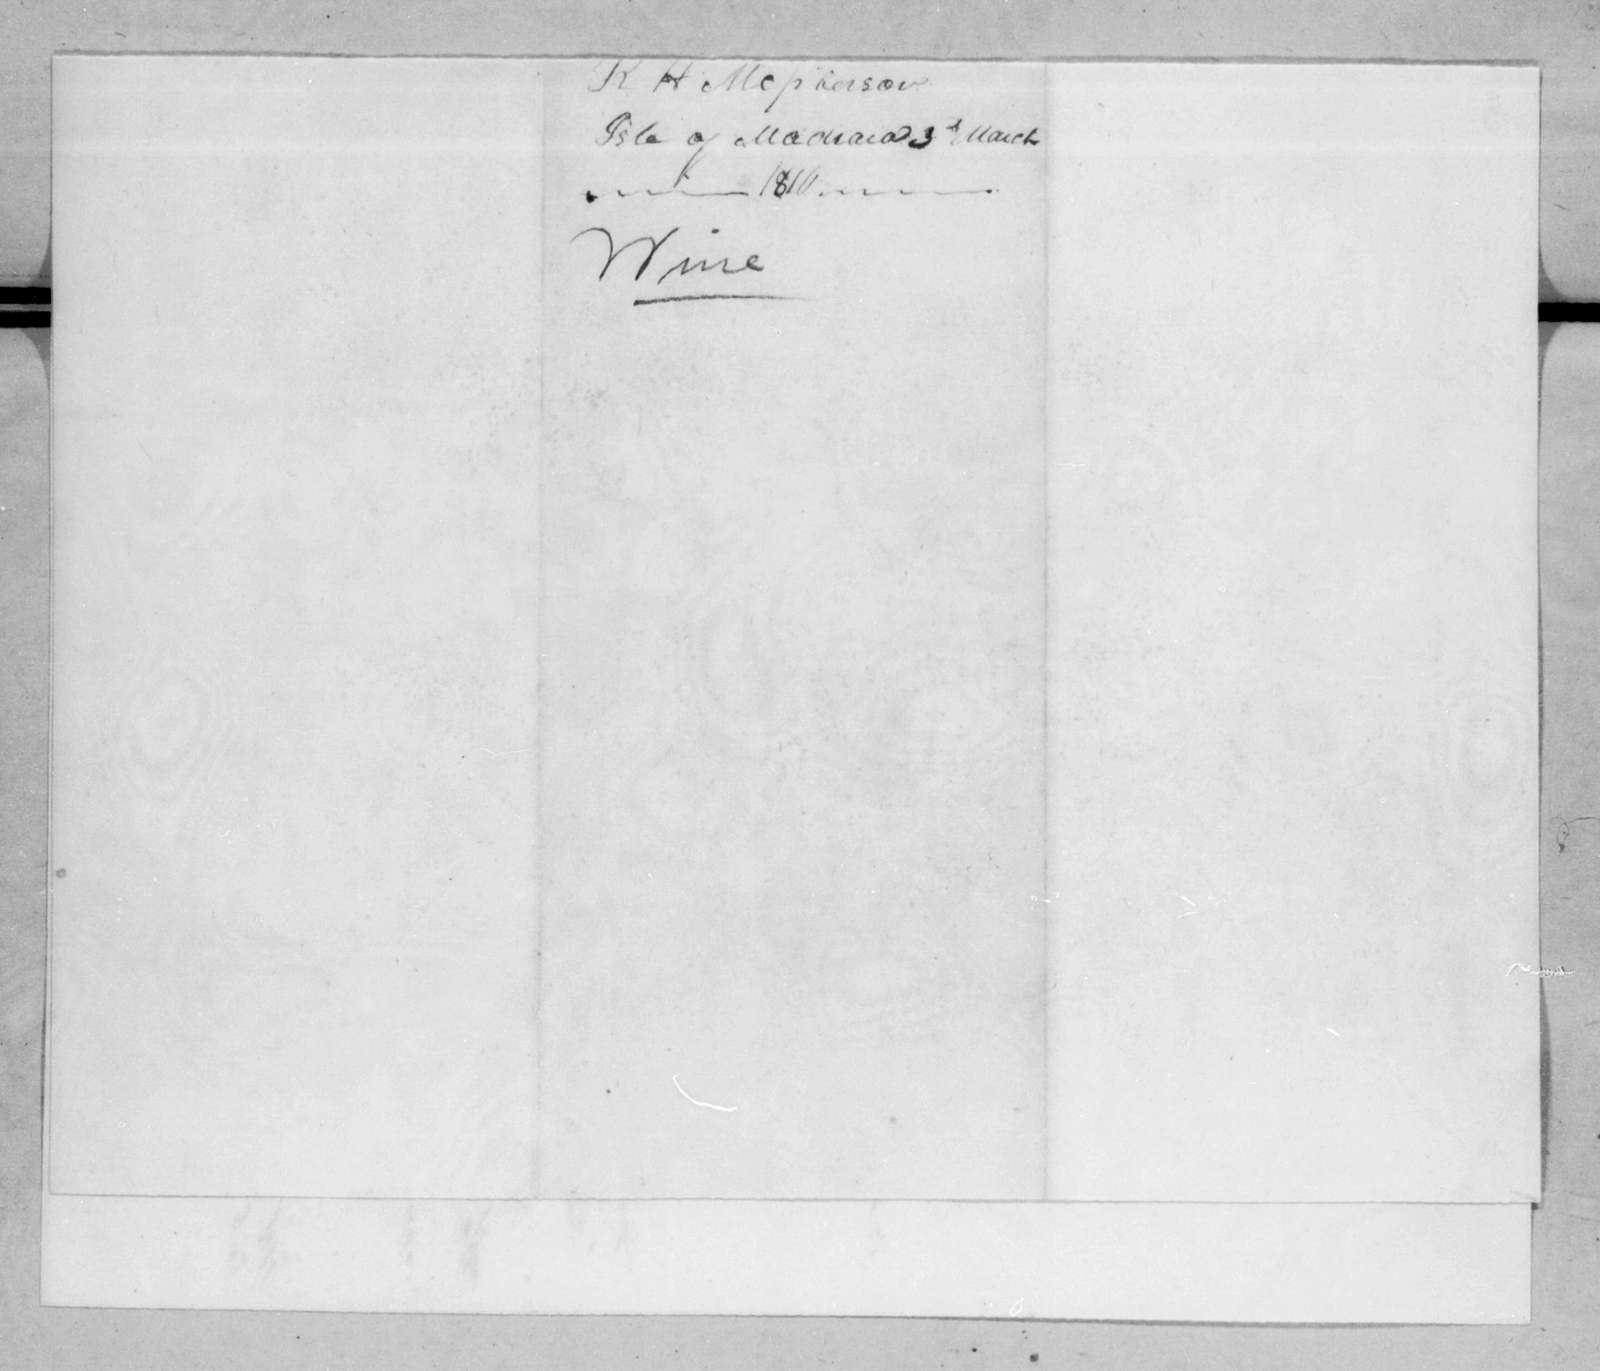 R. H. Macpherson to Andrew Jackson, March 3, 1816